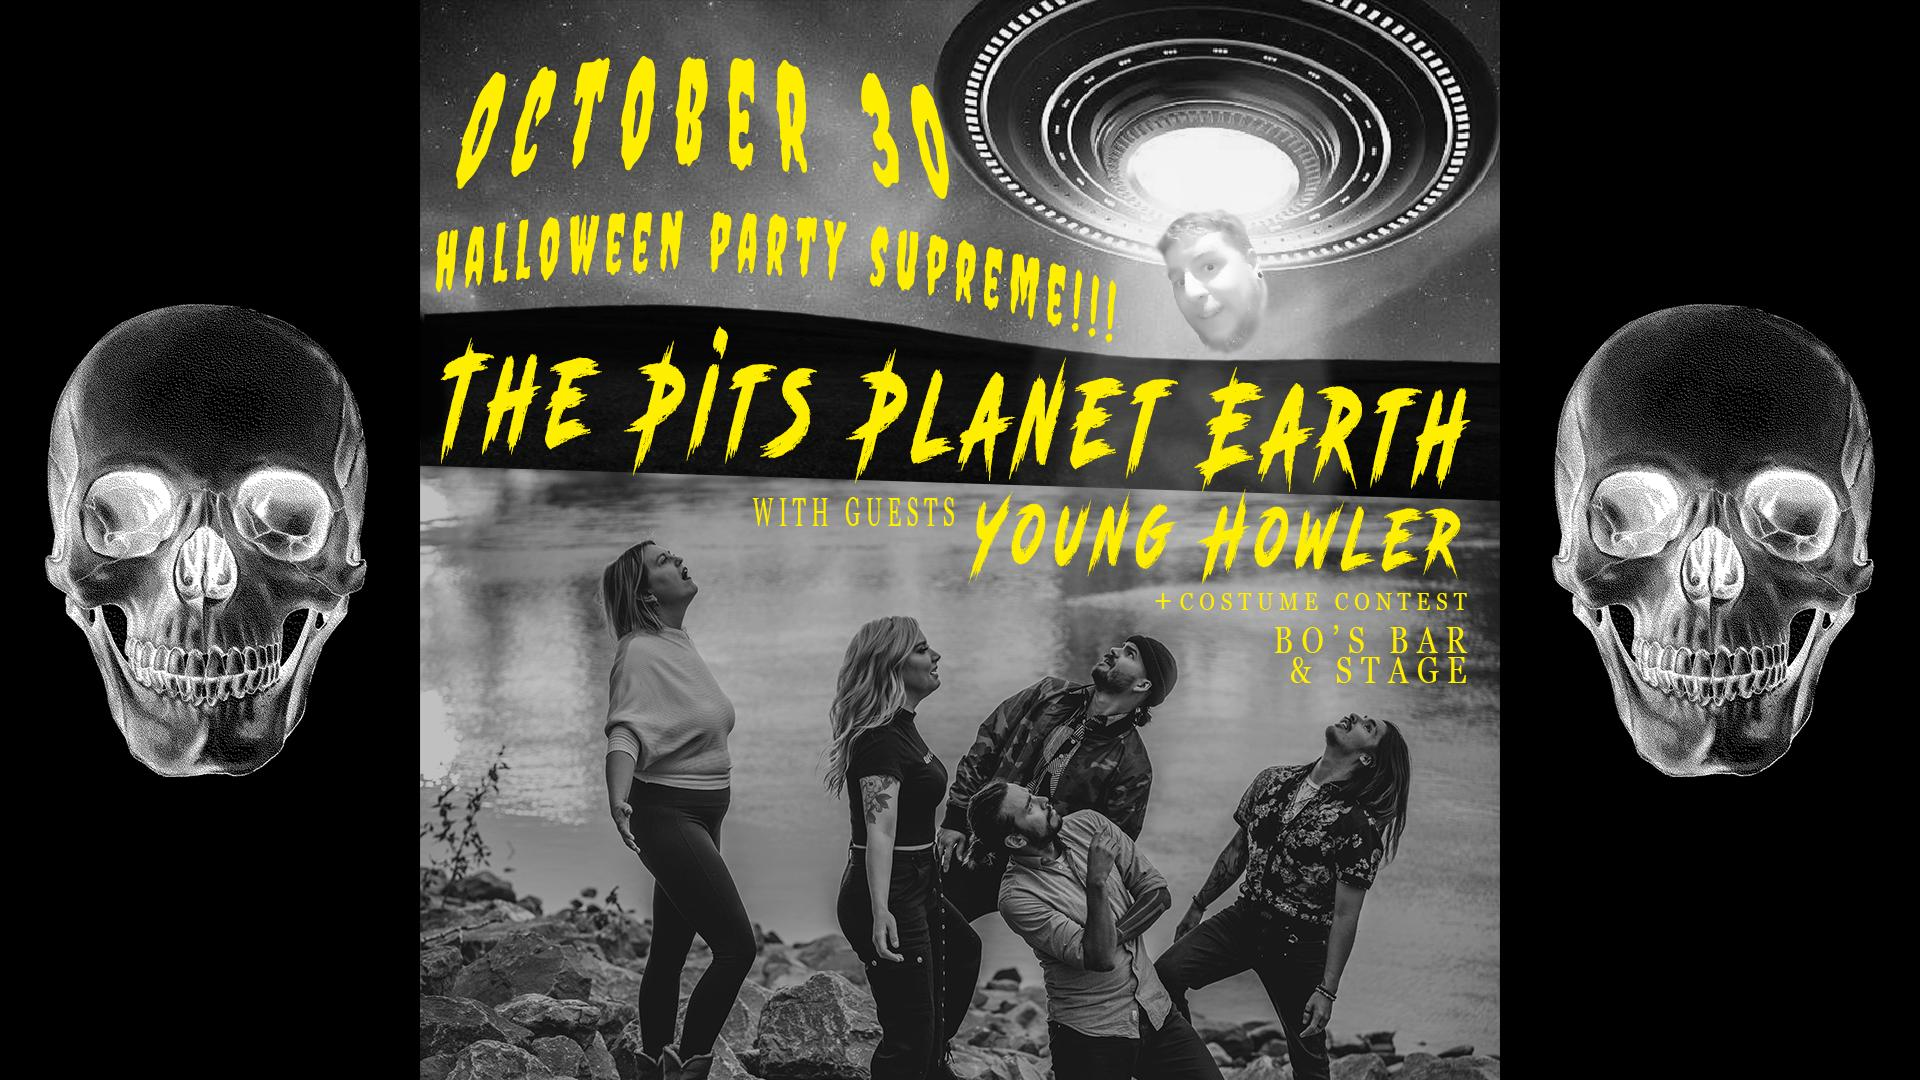 Halloween Supreme w/ The Pits Planet Earth & Young Howler